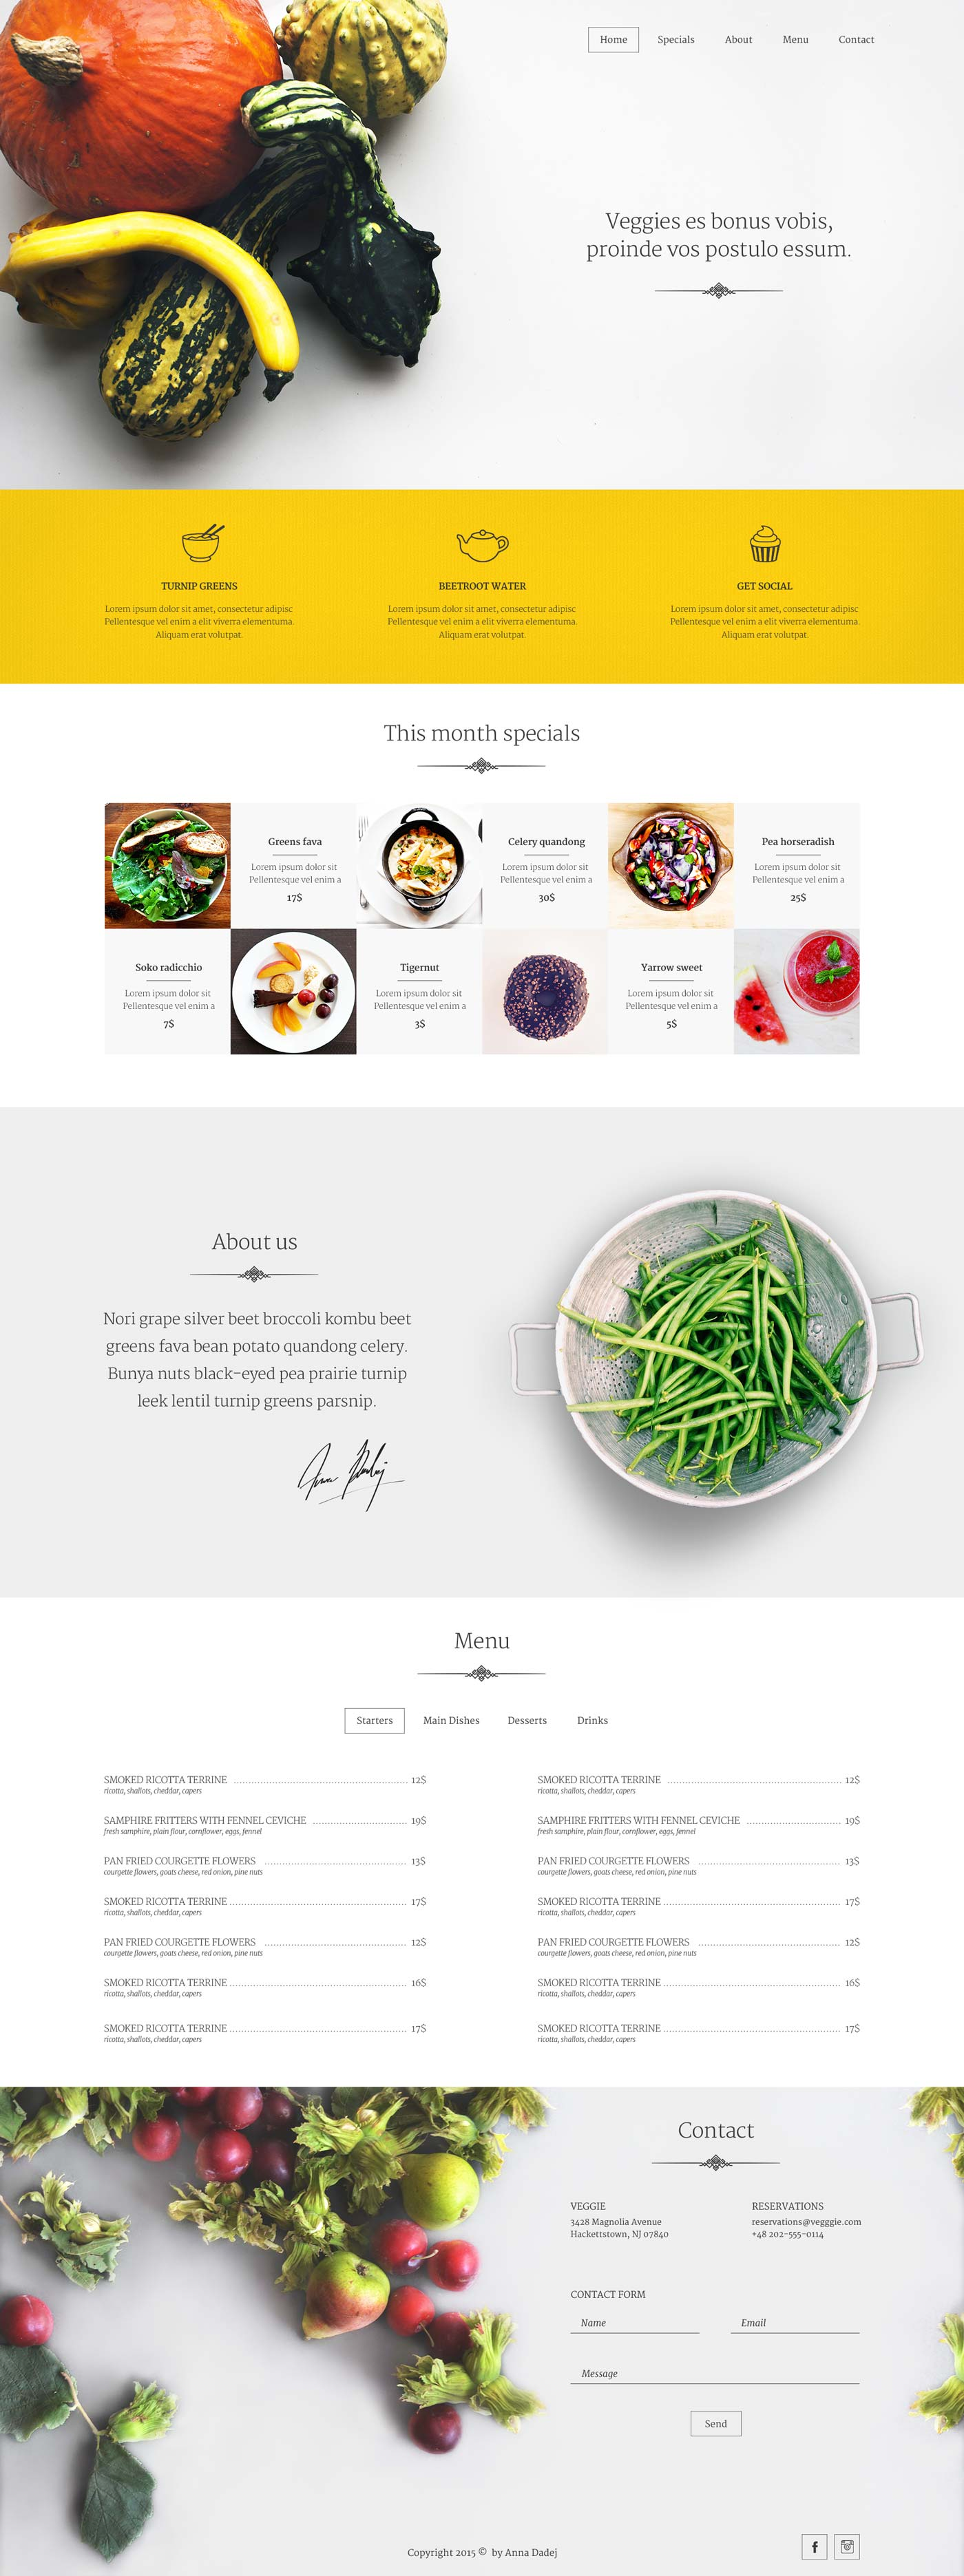 Veggie - FREE One Page PSD Template